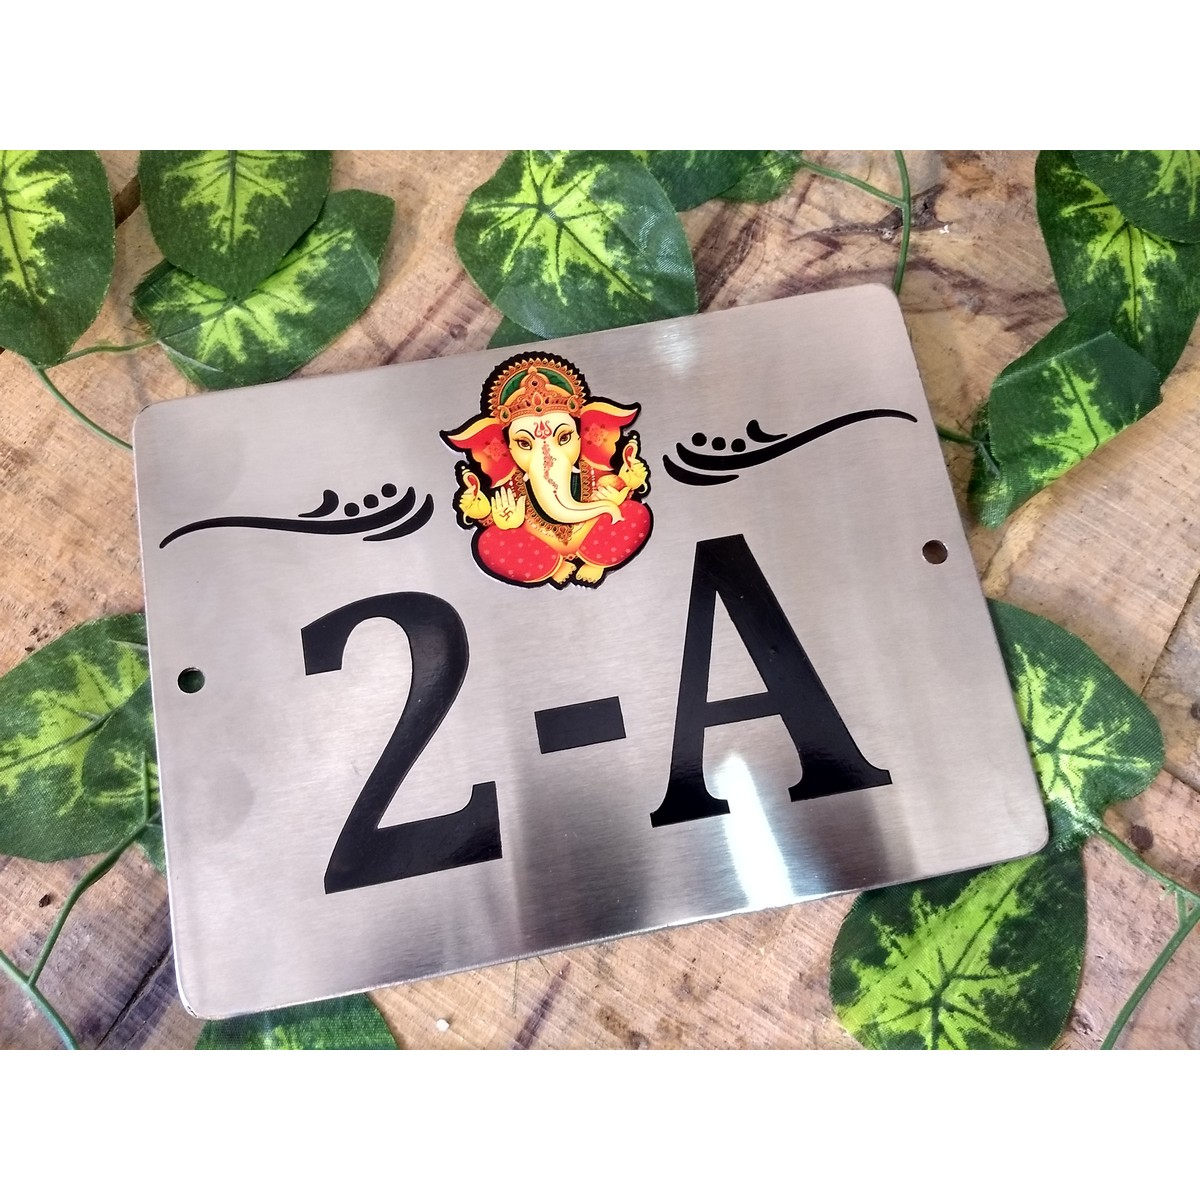 Stainless Steel Laser Cut Name Plate  SS 304  Stainless Steel Laser Engraved Name Plate  SS 304 2